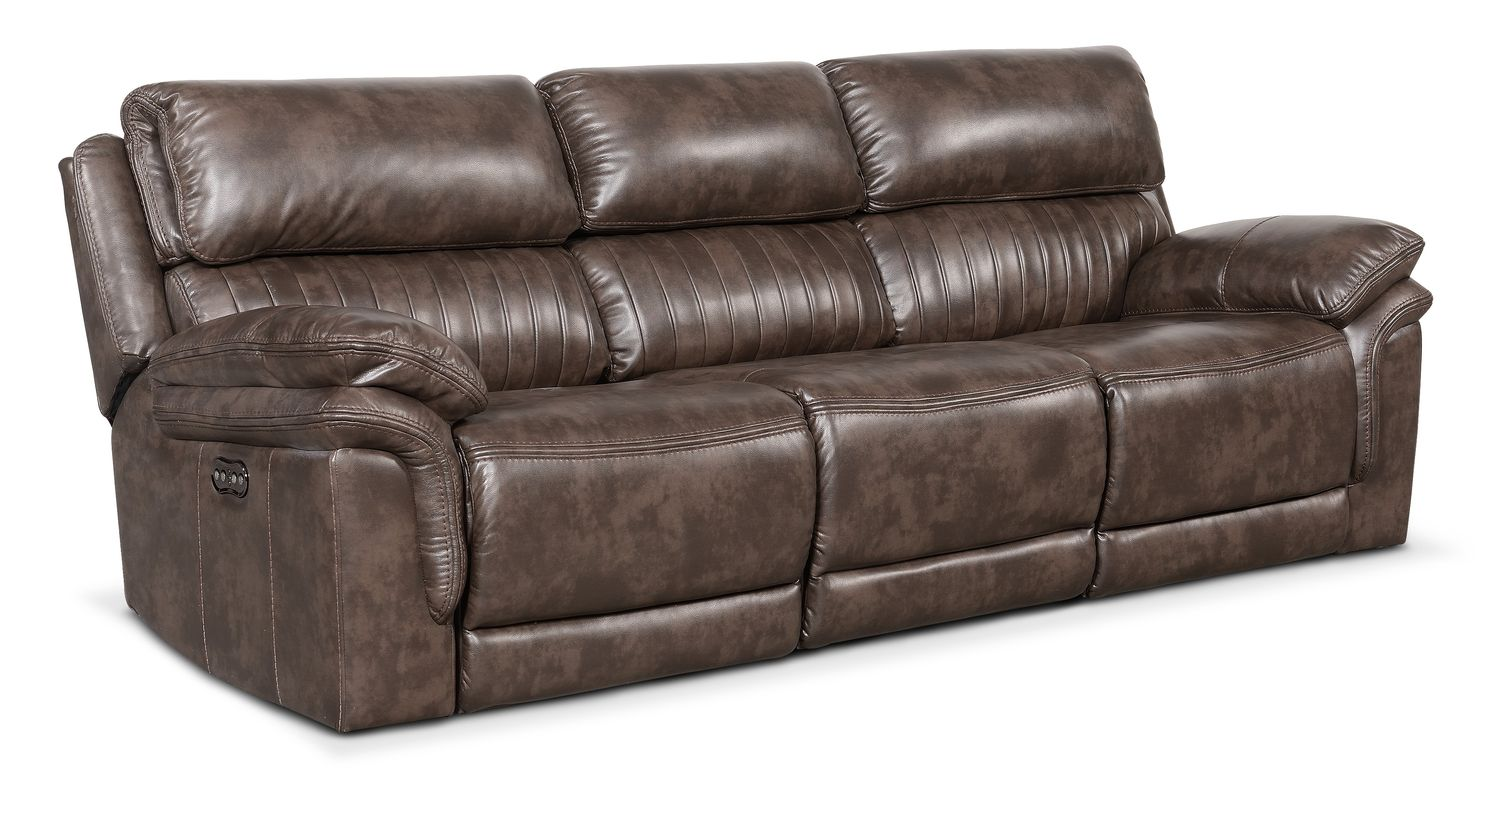 Sofas Couches Living Room Seating American Signature Furniture